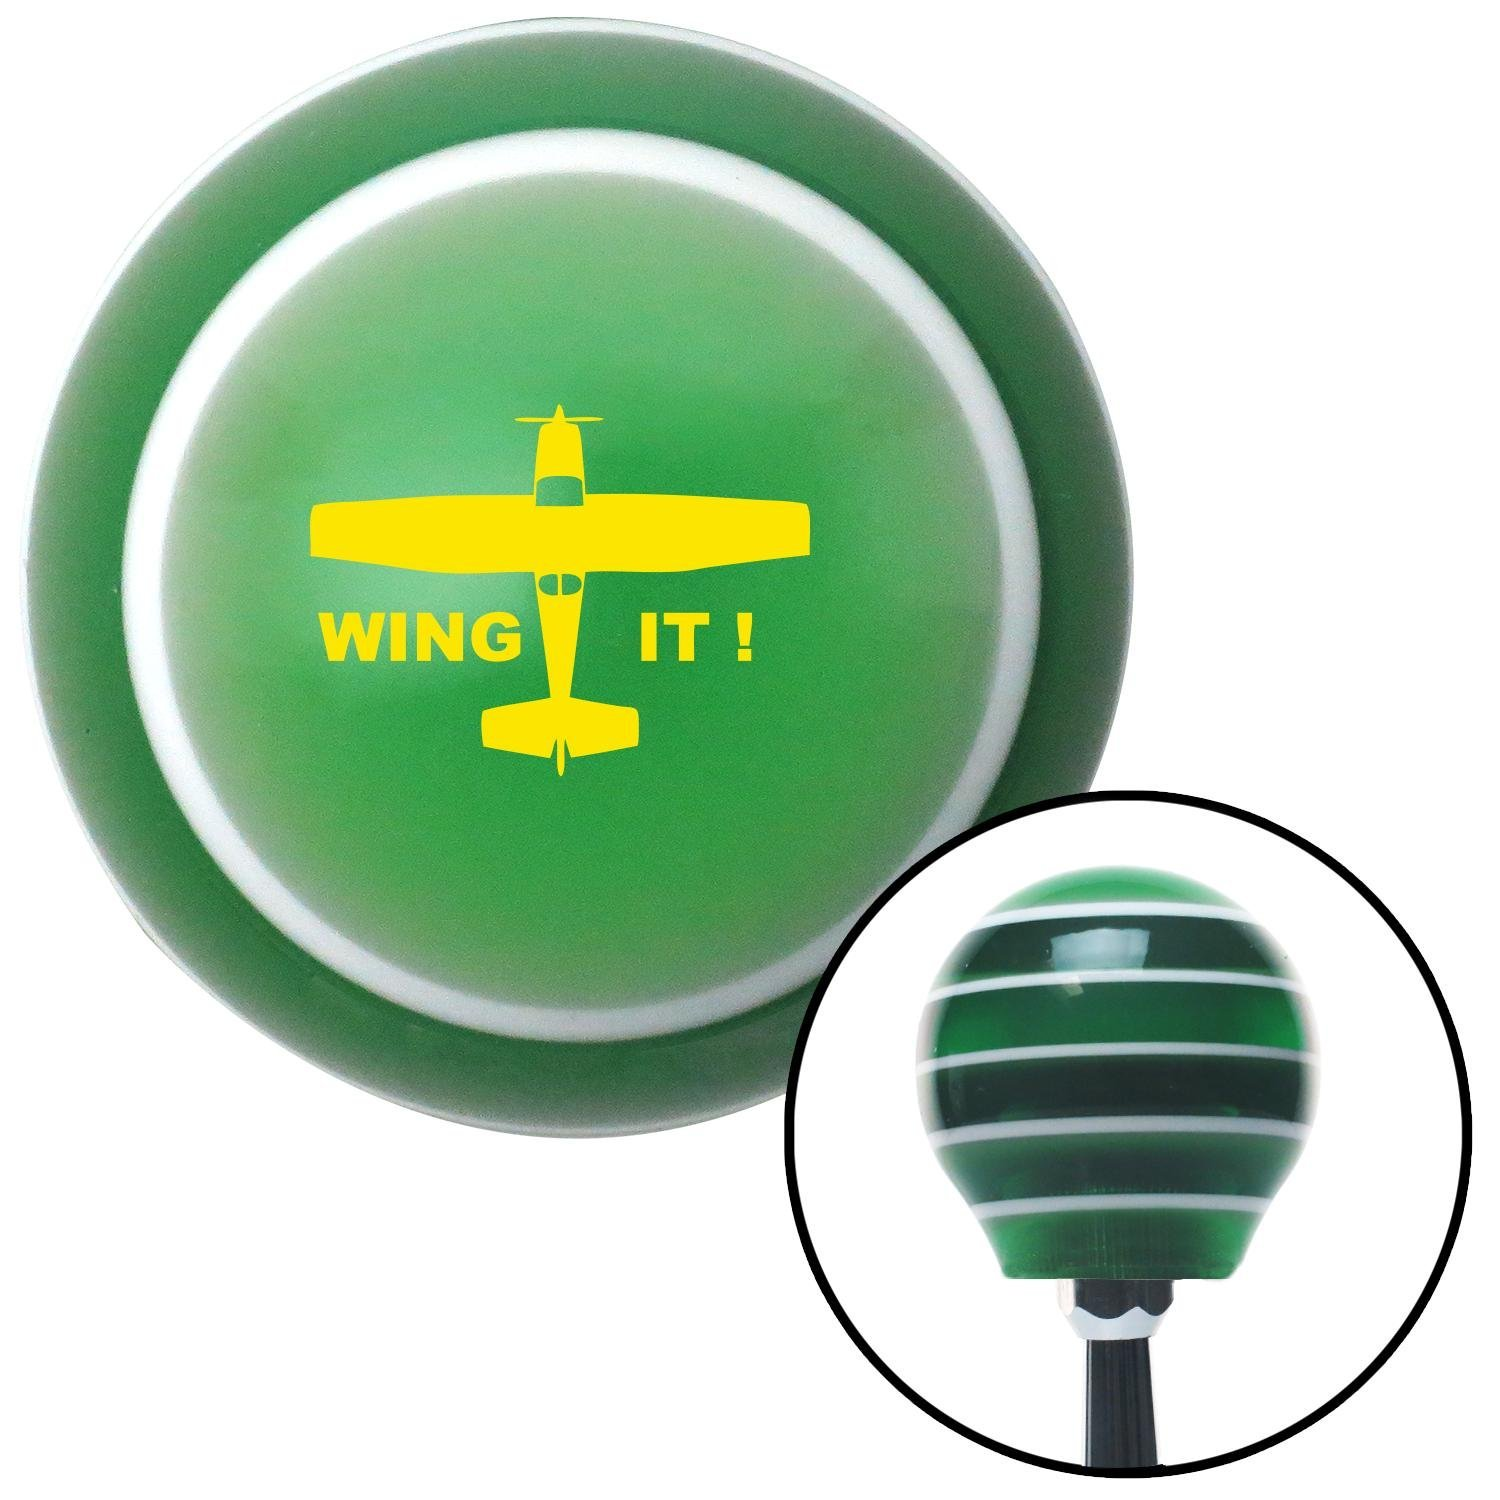 American Shifter 129585 Green Stripe Shift Knob with M16 x 1.5 Insert Yellow Wing It